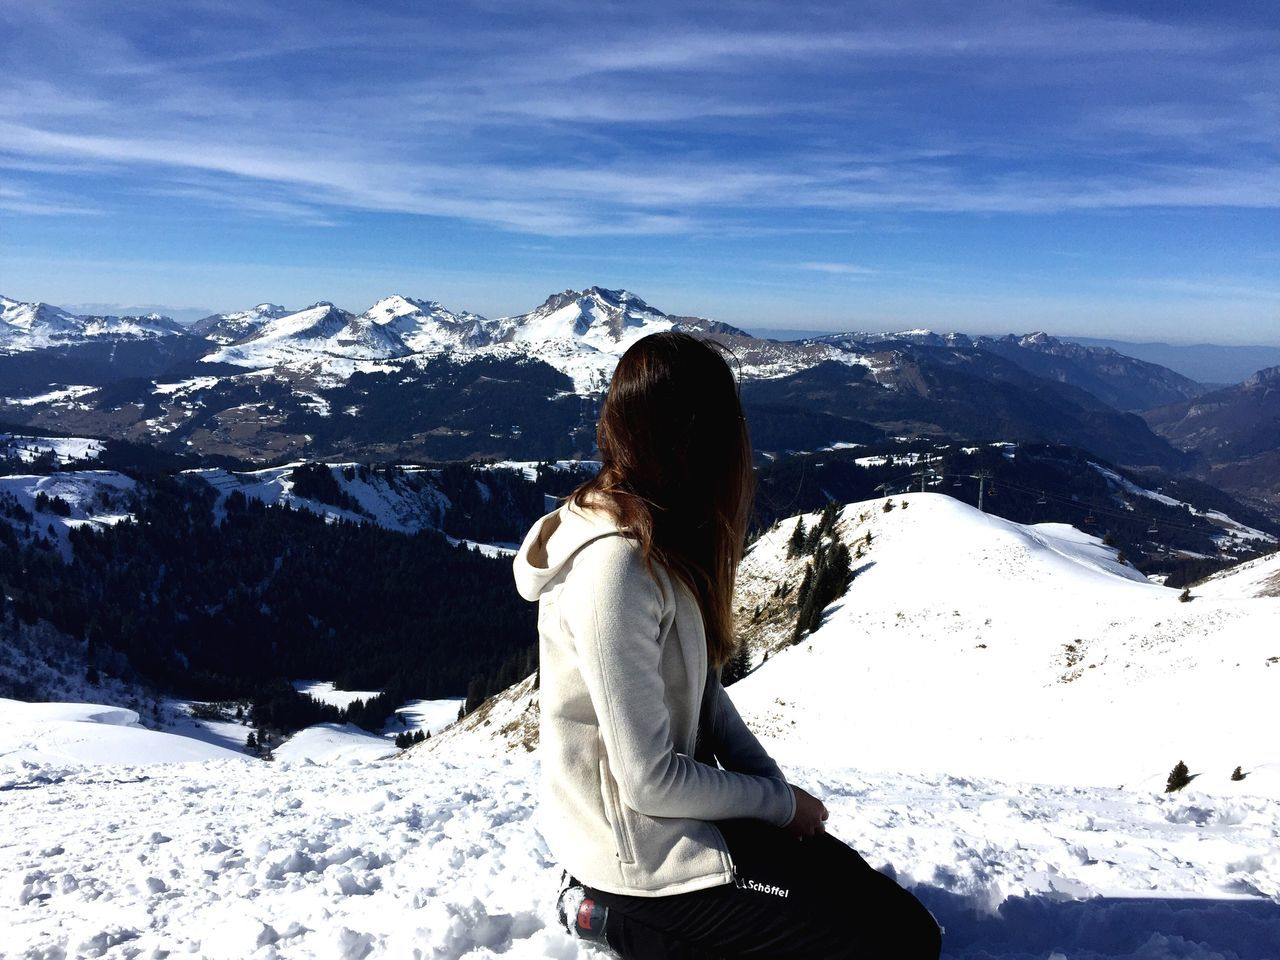 Winter Snow Mountain Nature Beauty In Nature One Person Lifestyles Snowboarding Skiing